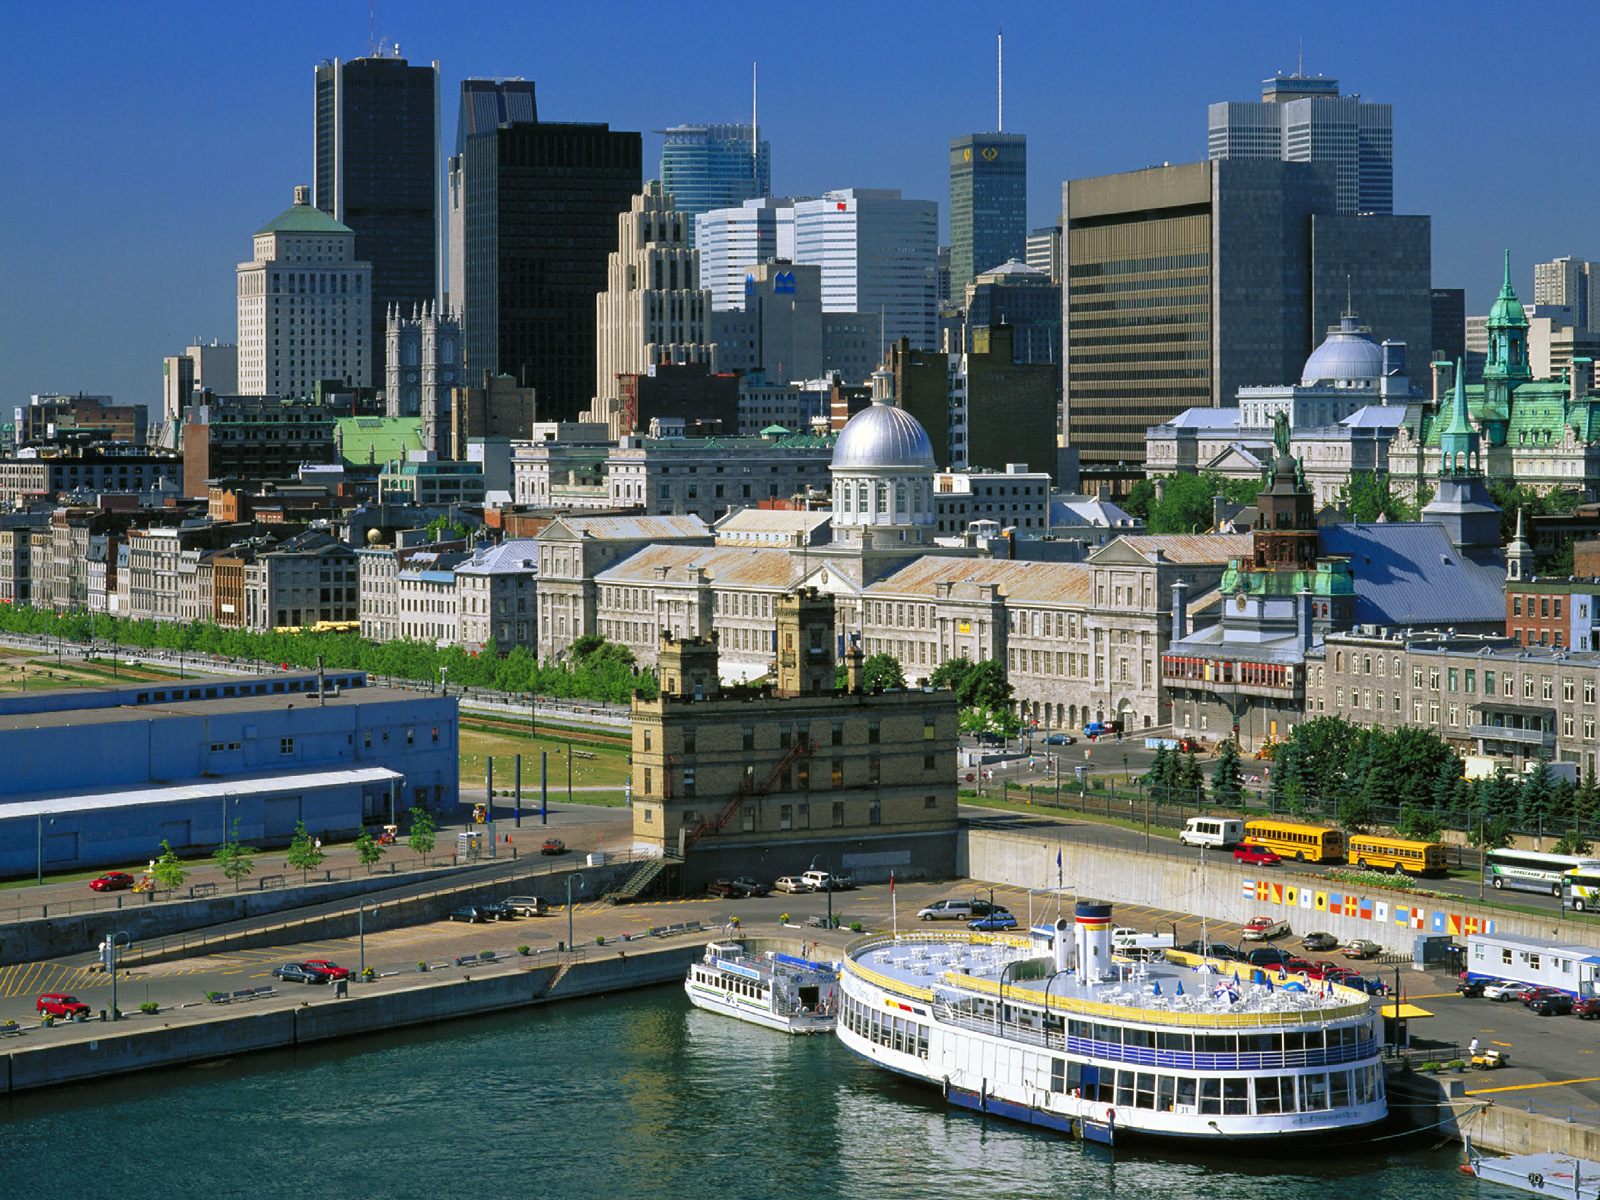 Quebec Canada Skilled Worker Program reopens with new quota The 1600x1200